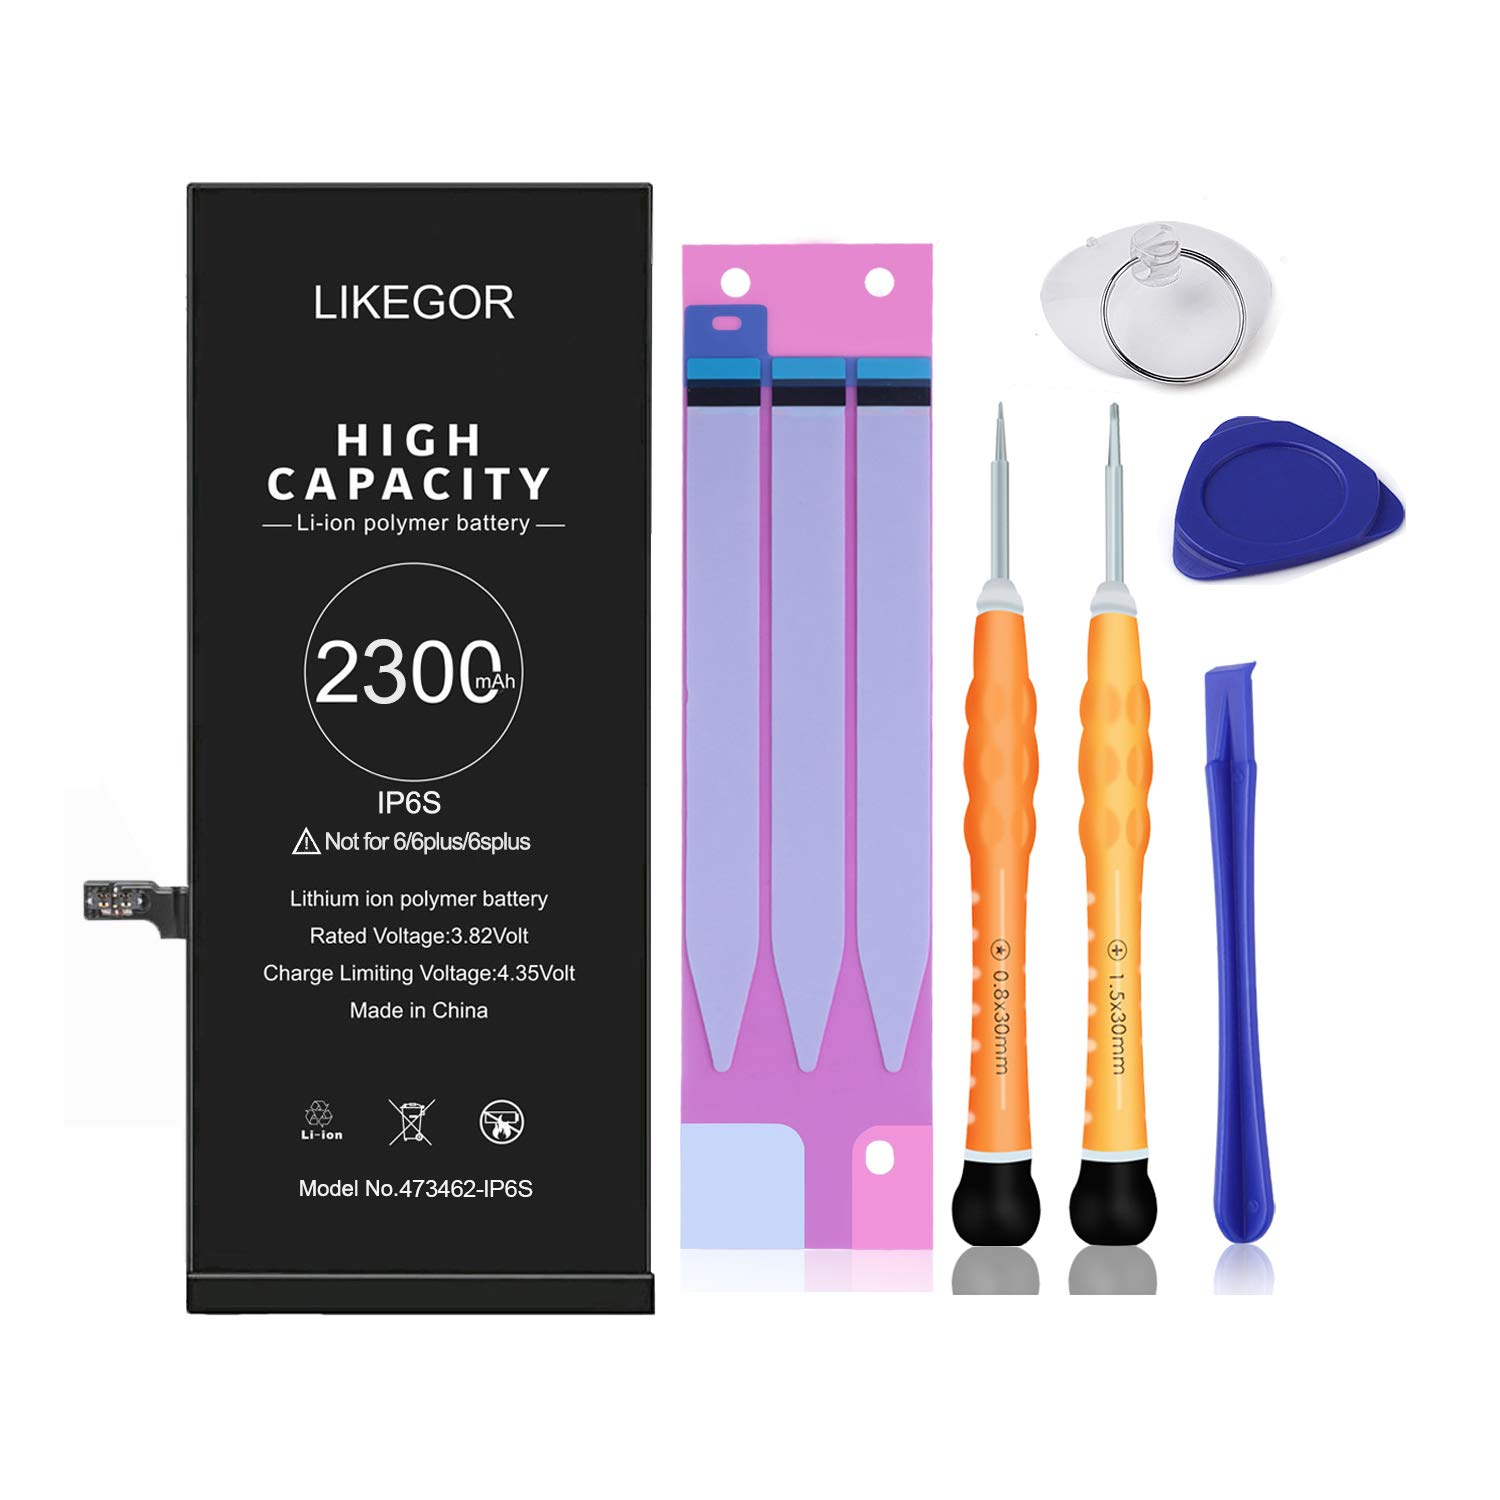 LIKEGOR 2300mAh IP6S Battery Replacement for Model A1633 A1688 A1700 Battery with Complete Tool Kits, Adhesive Strips and Instruction (for iP6S Only)-24 Months Warranty by LIKEGOR